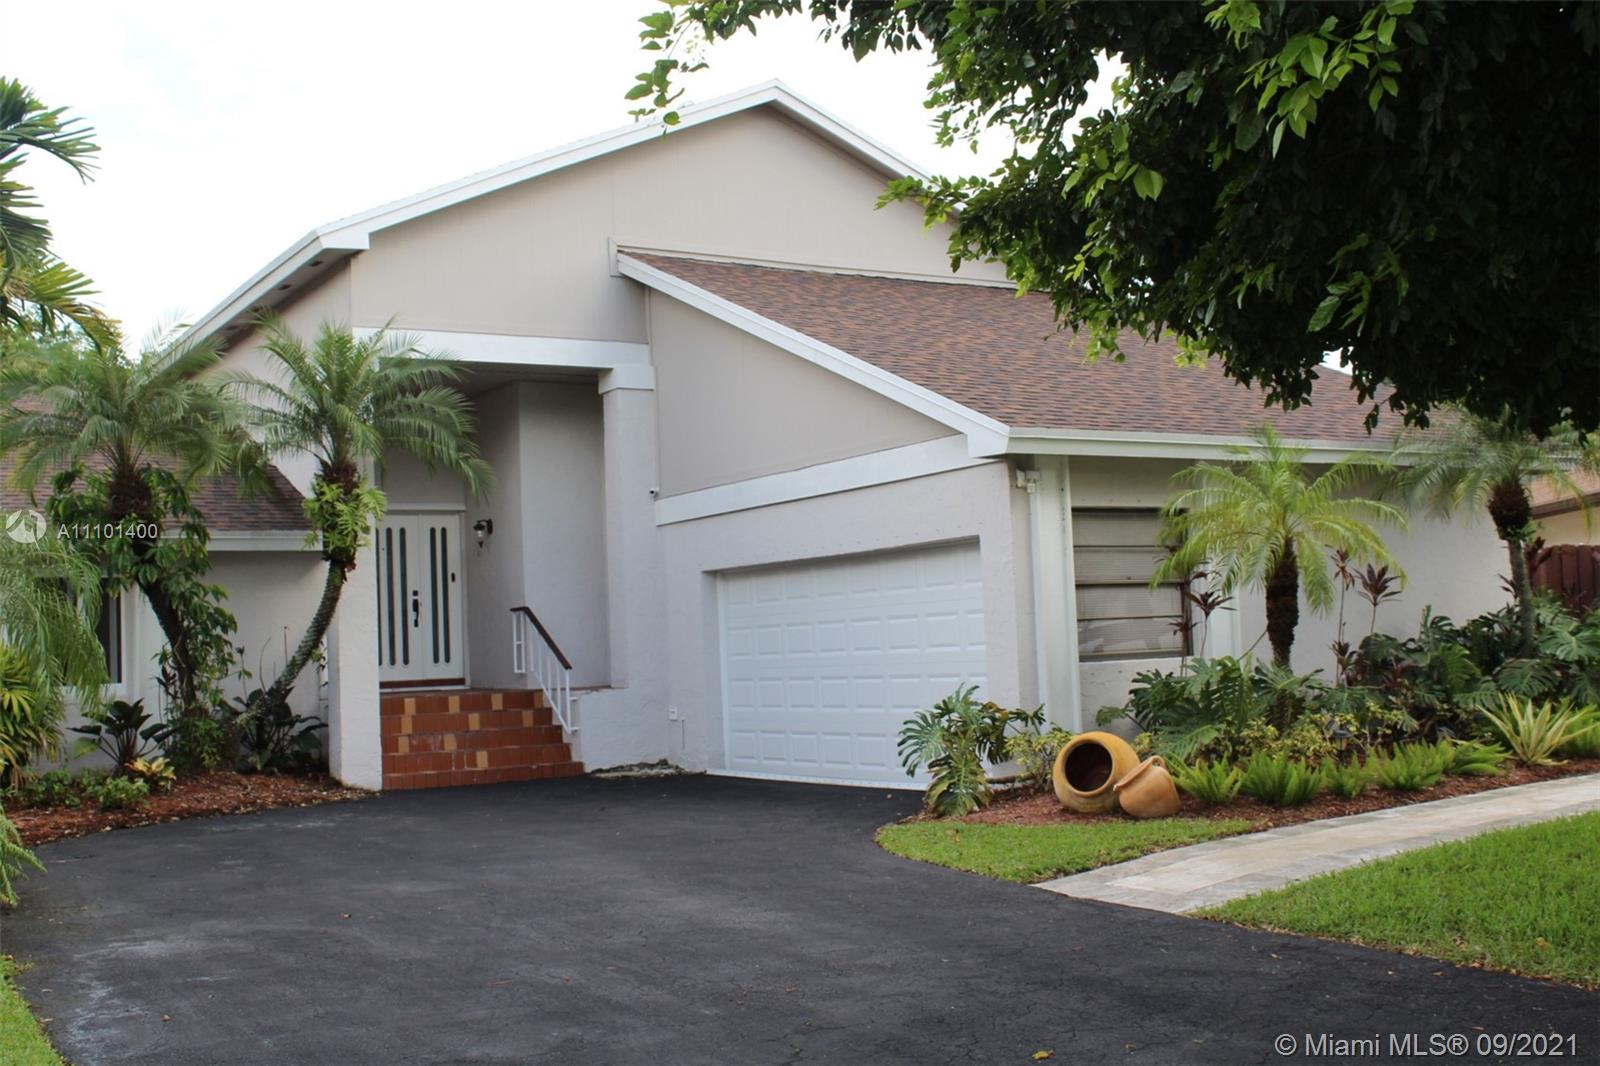 Lakes Of The Meadow - 5411 SW 152nd Place Cir, Miami, FL 33185